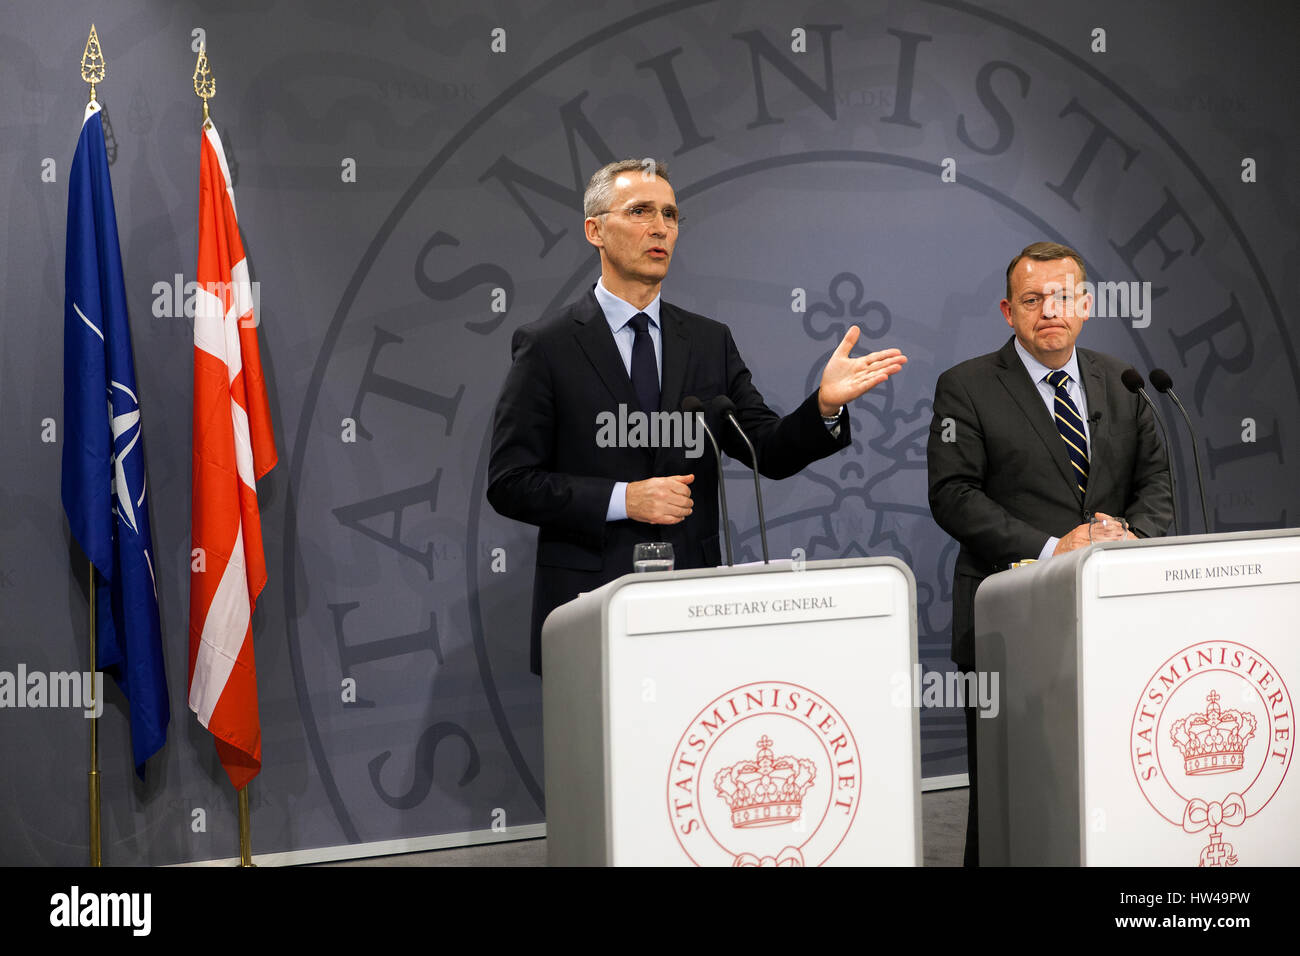 NATO Secretary General Jens Stoltenberg (L) speaks at a press conference with Danish Prime Minister Lars Lokke Rasmussen - Stock Image